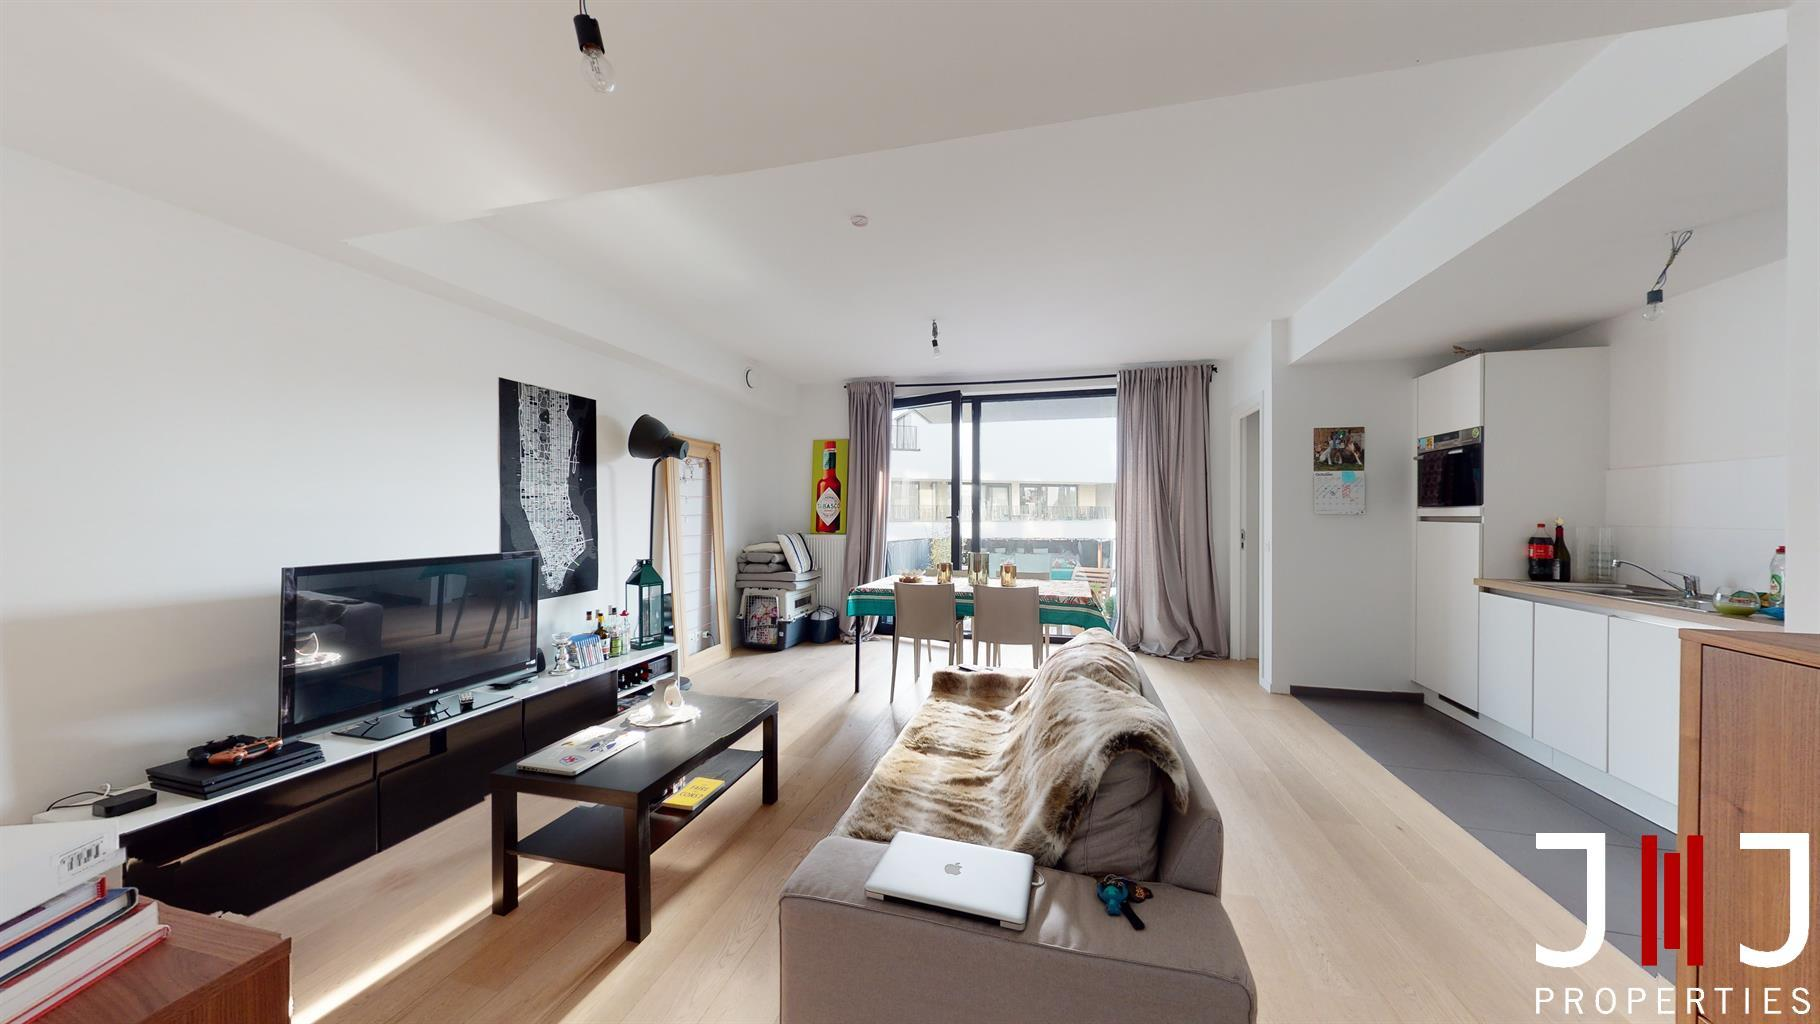 Flat for sale in Brussels